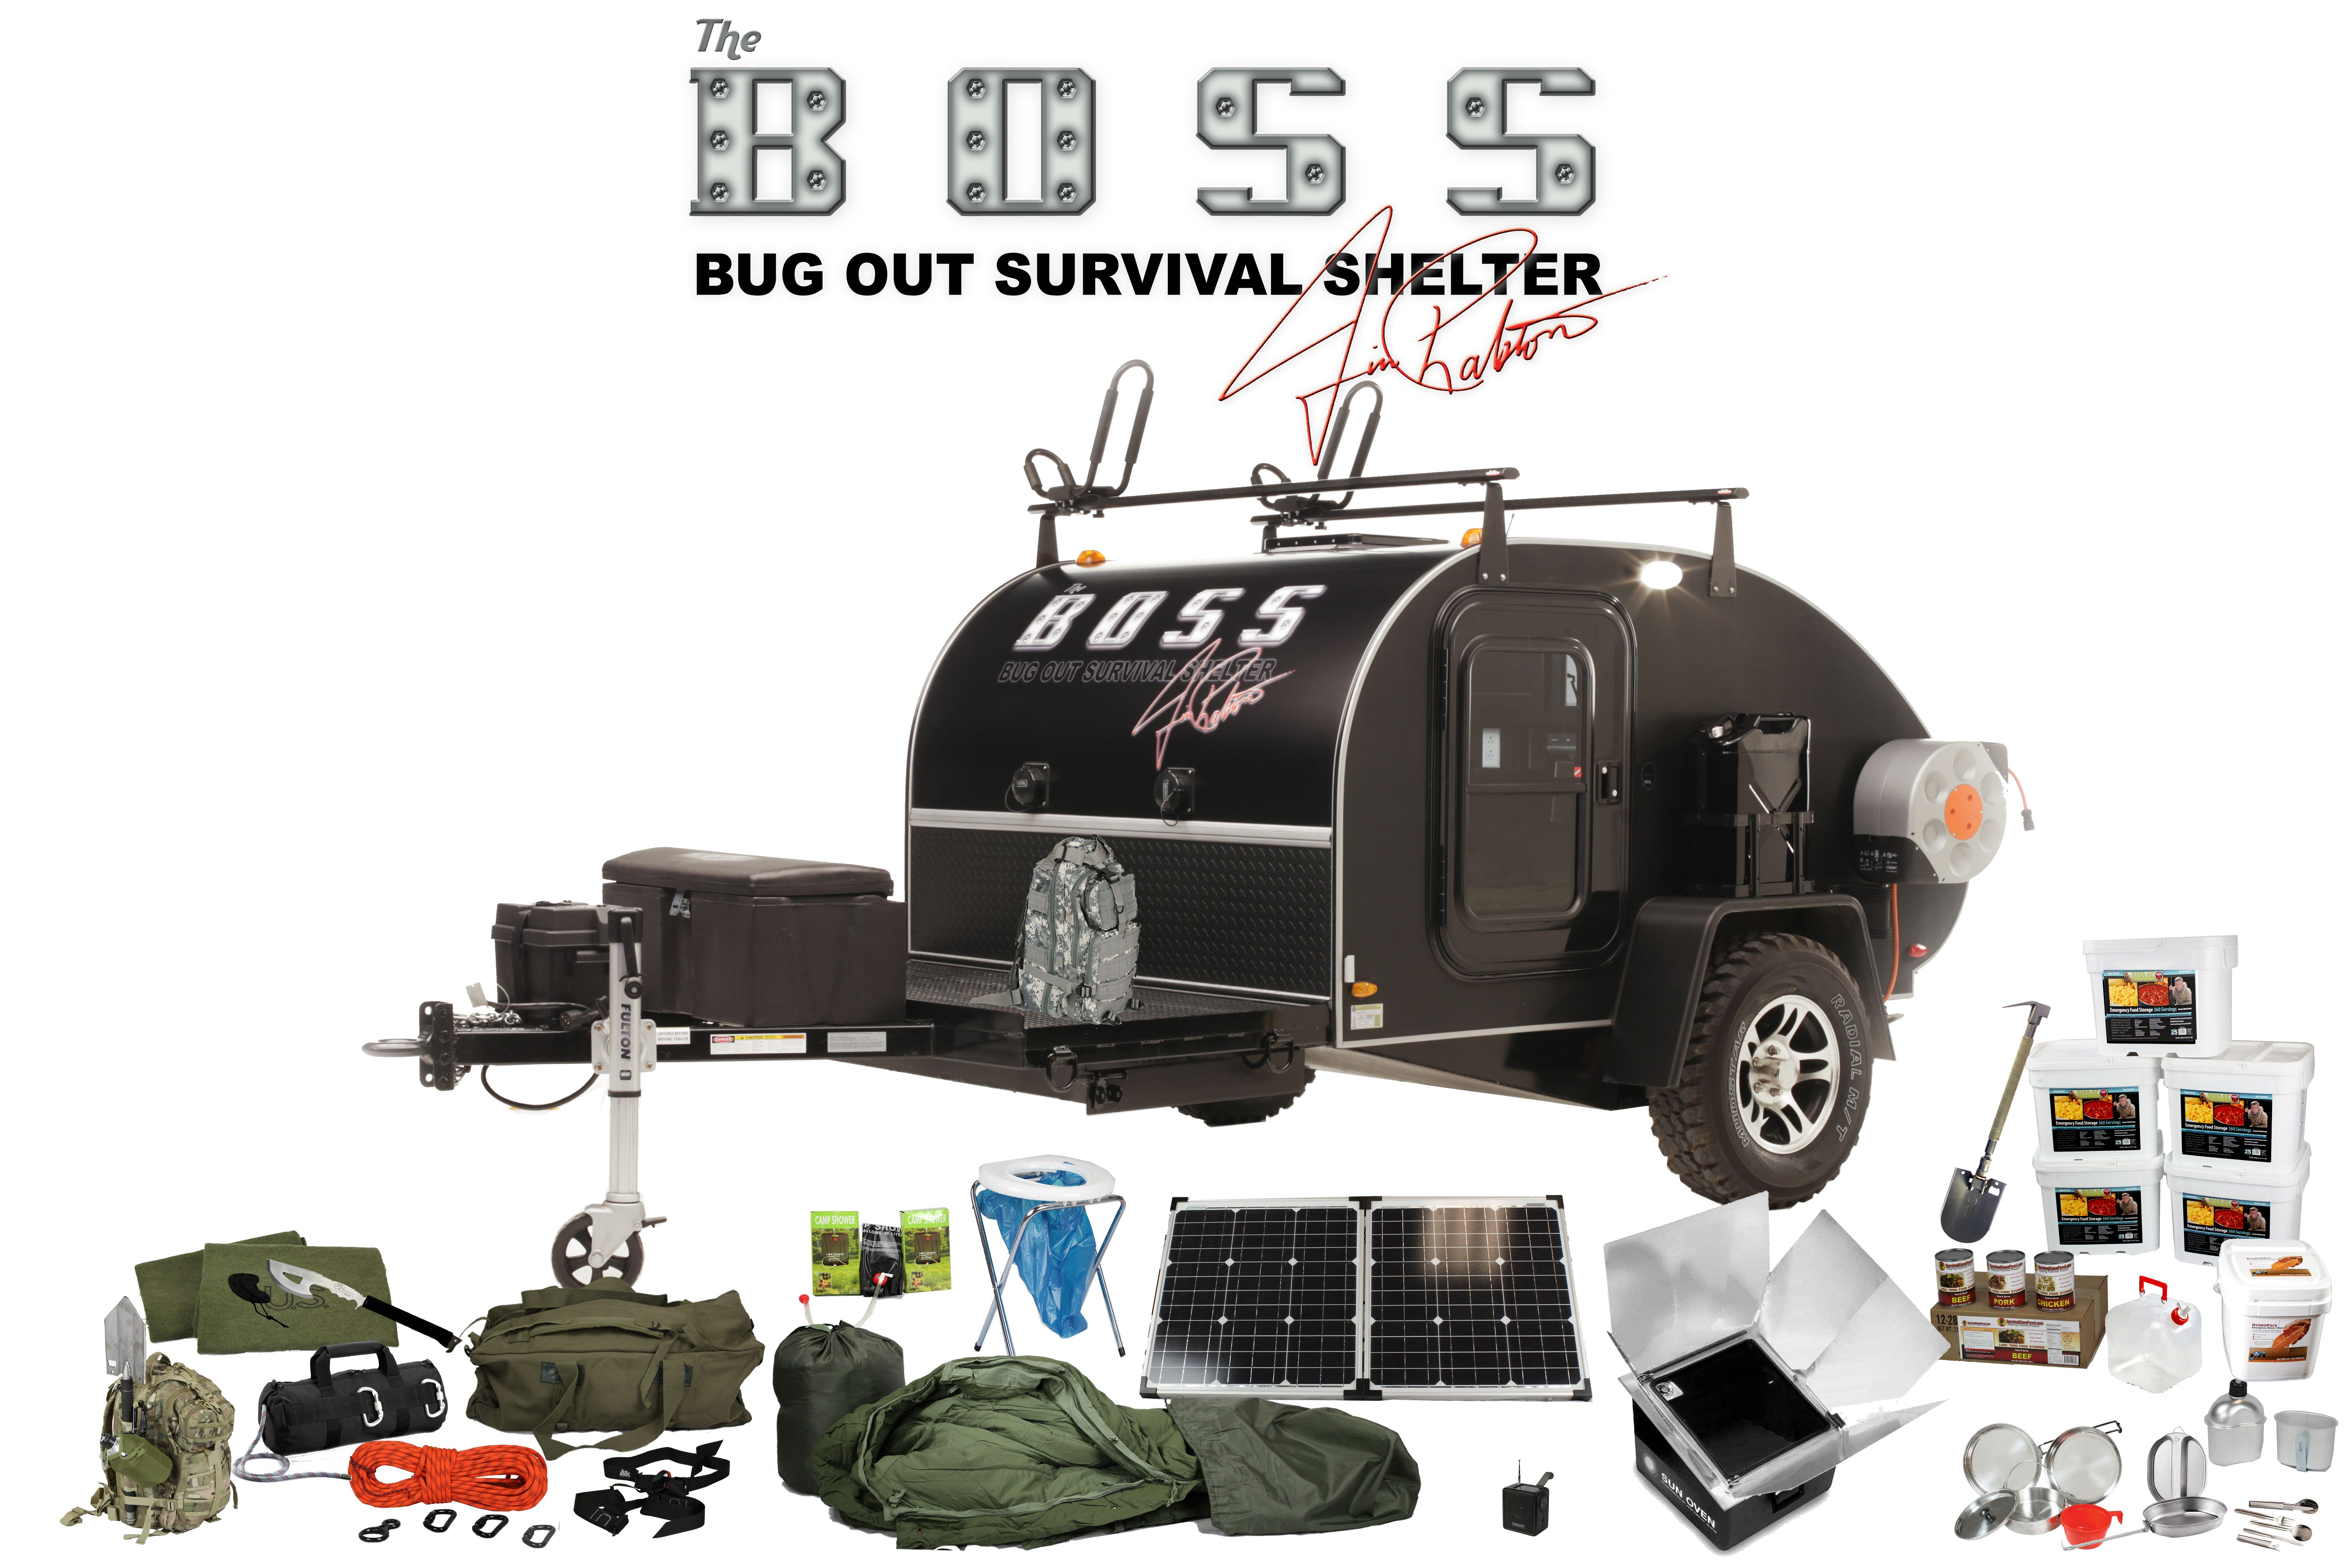 Shtf Shelter: The B*O*S*S* (Bug Out Survival Shelter)